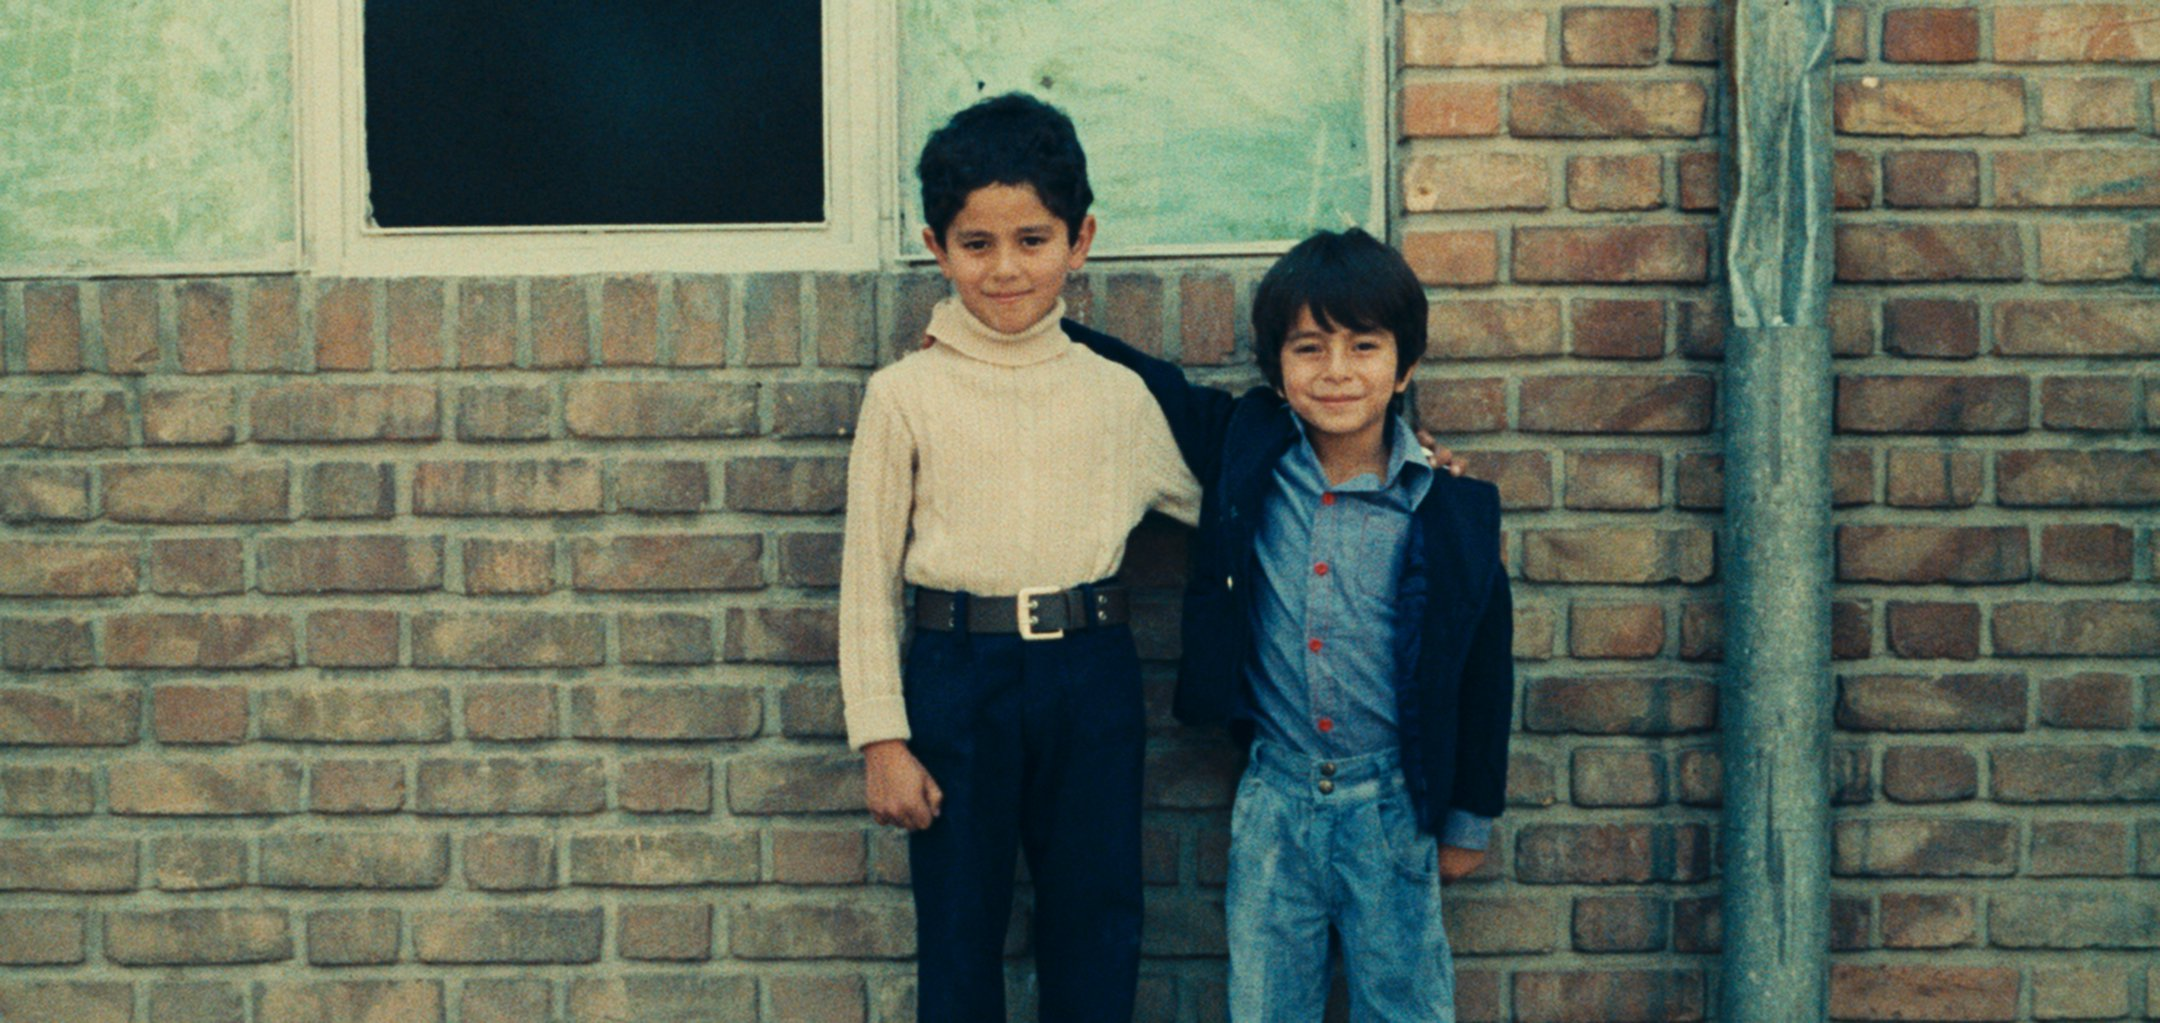 Still of two boys standing against a brick wall in a still from 'Two Solutions For One Problem' (1975) (c) Kanoon